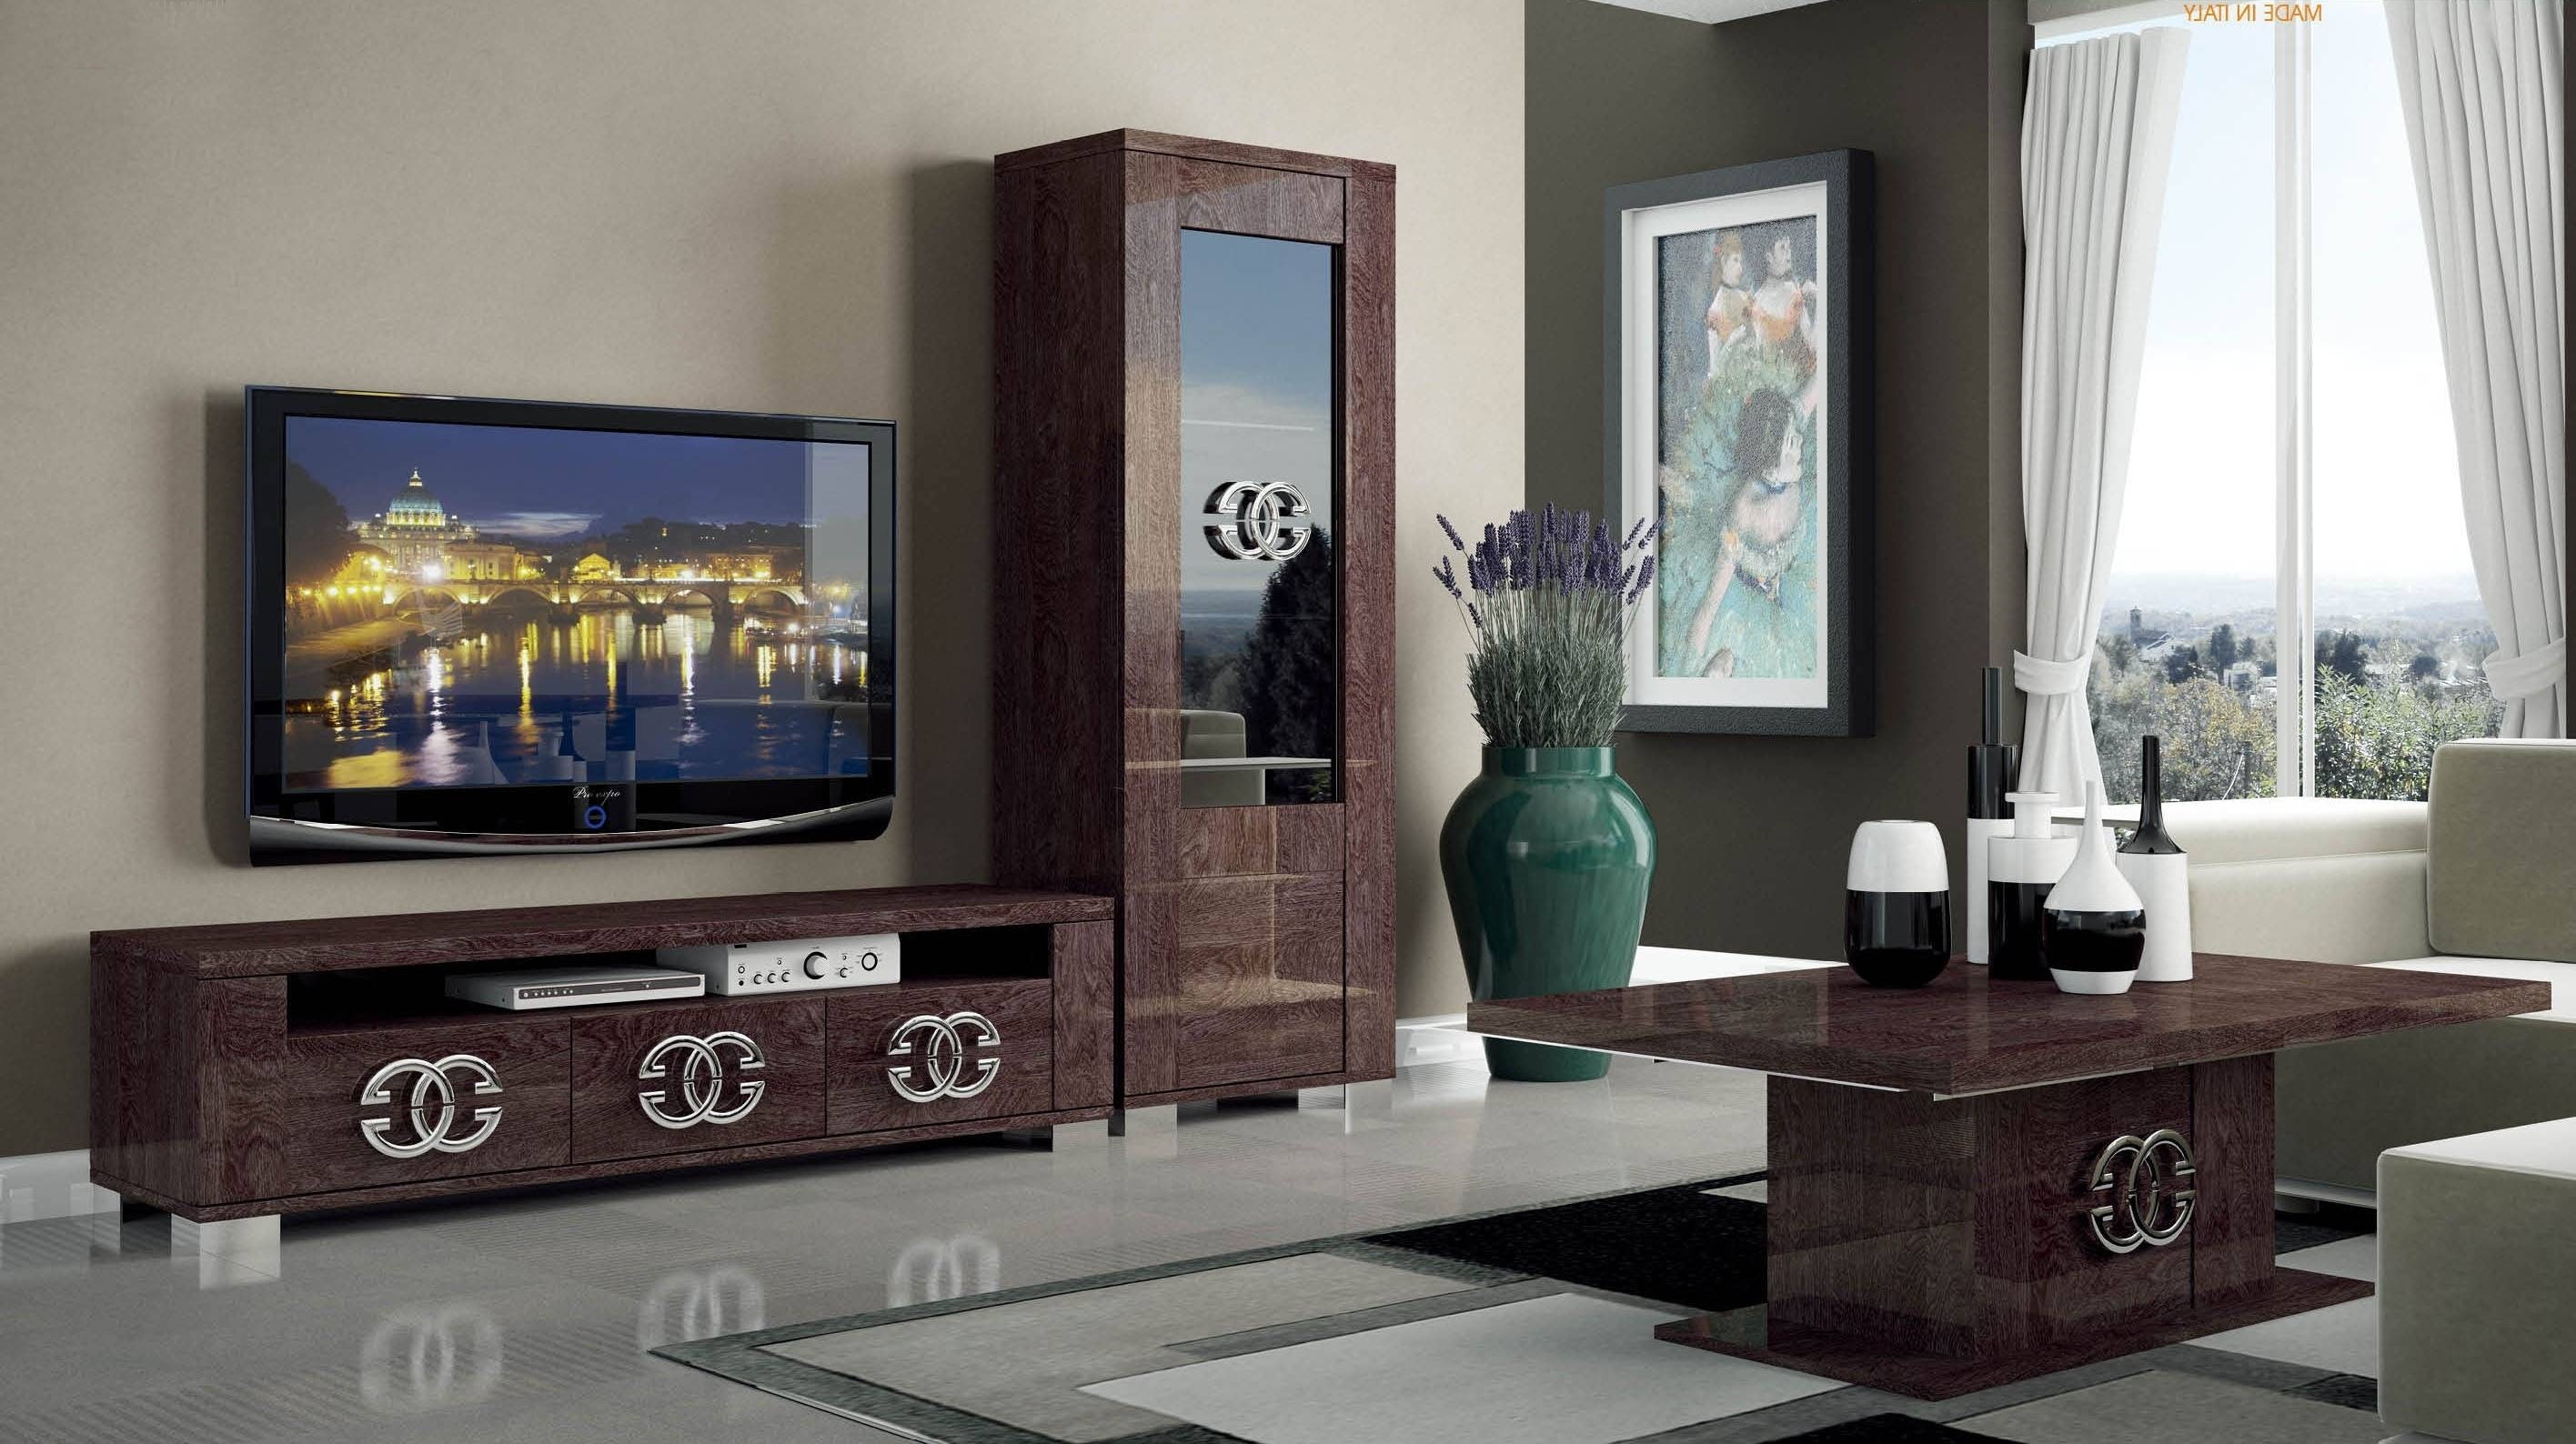 Excellent Luxury Tv Stands 103 Luxury Tv Stands Uk Decoration pertaining to Luxury Tv Stands (Image 4 of 15)